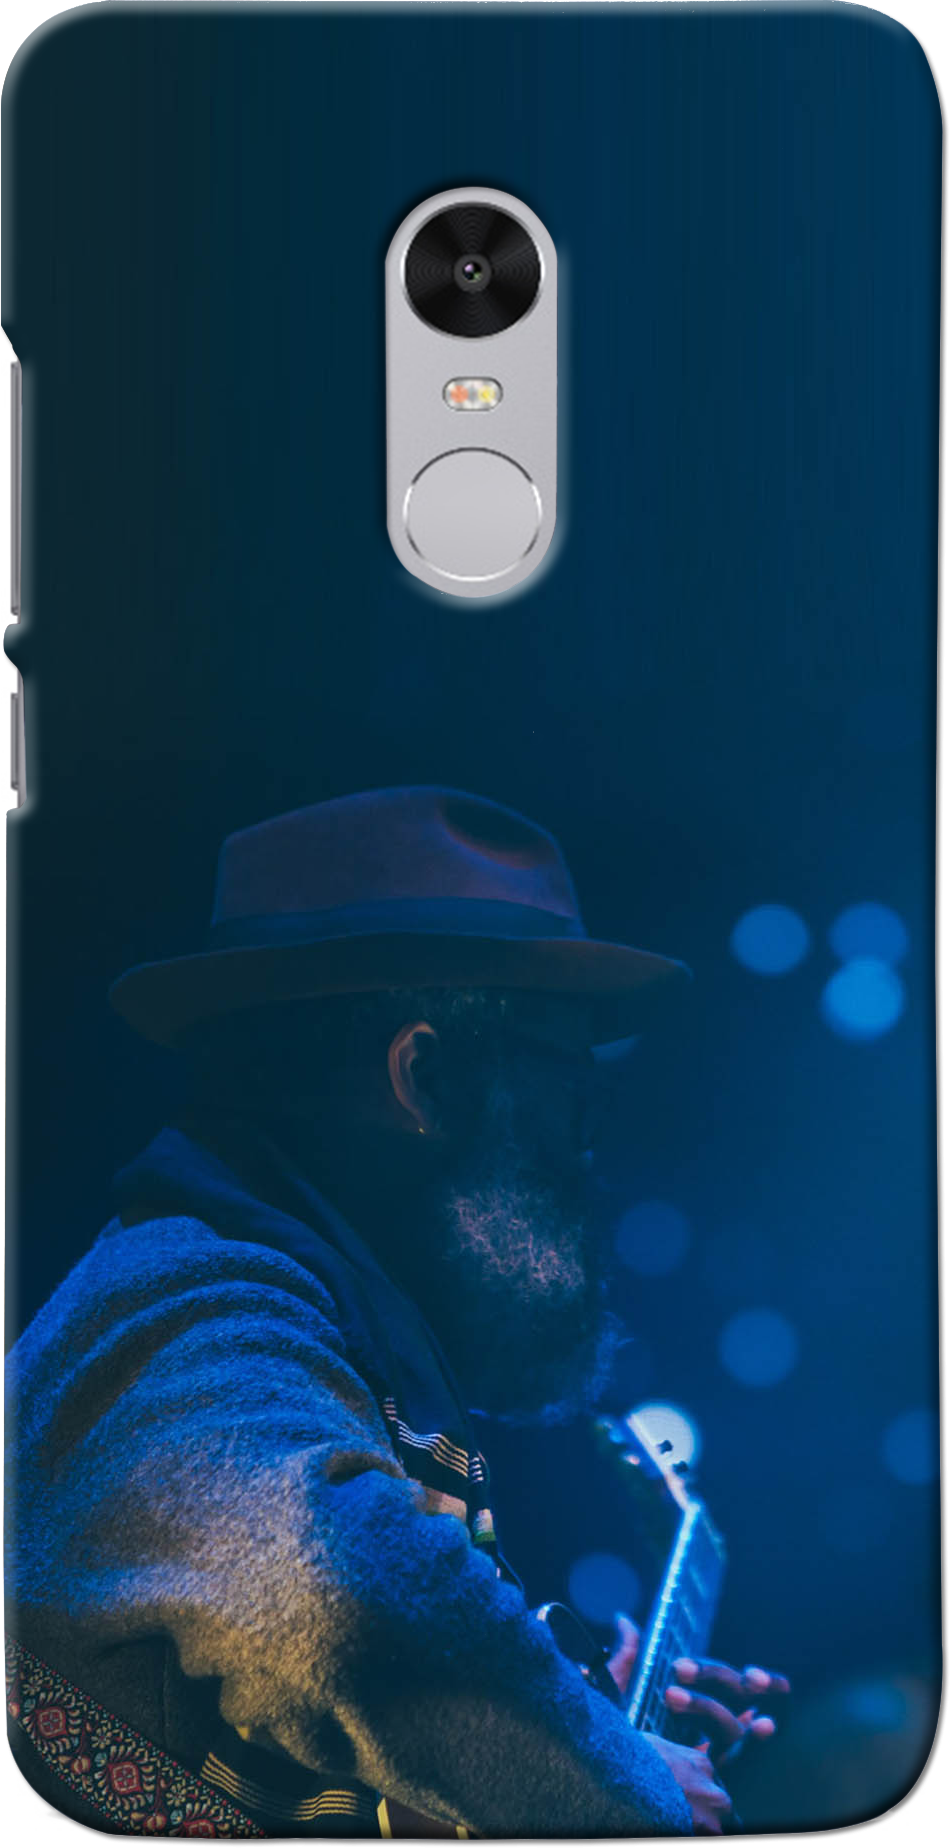 bajajequipments Mobile Cover For Redmi Note4?.. 53